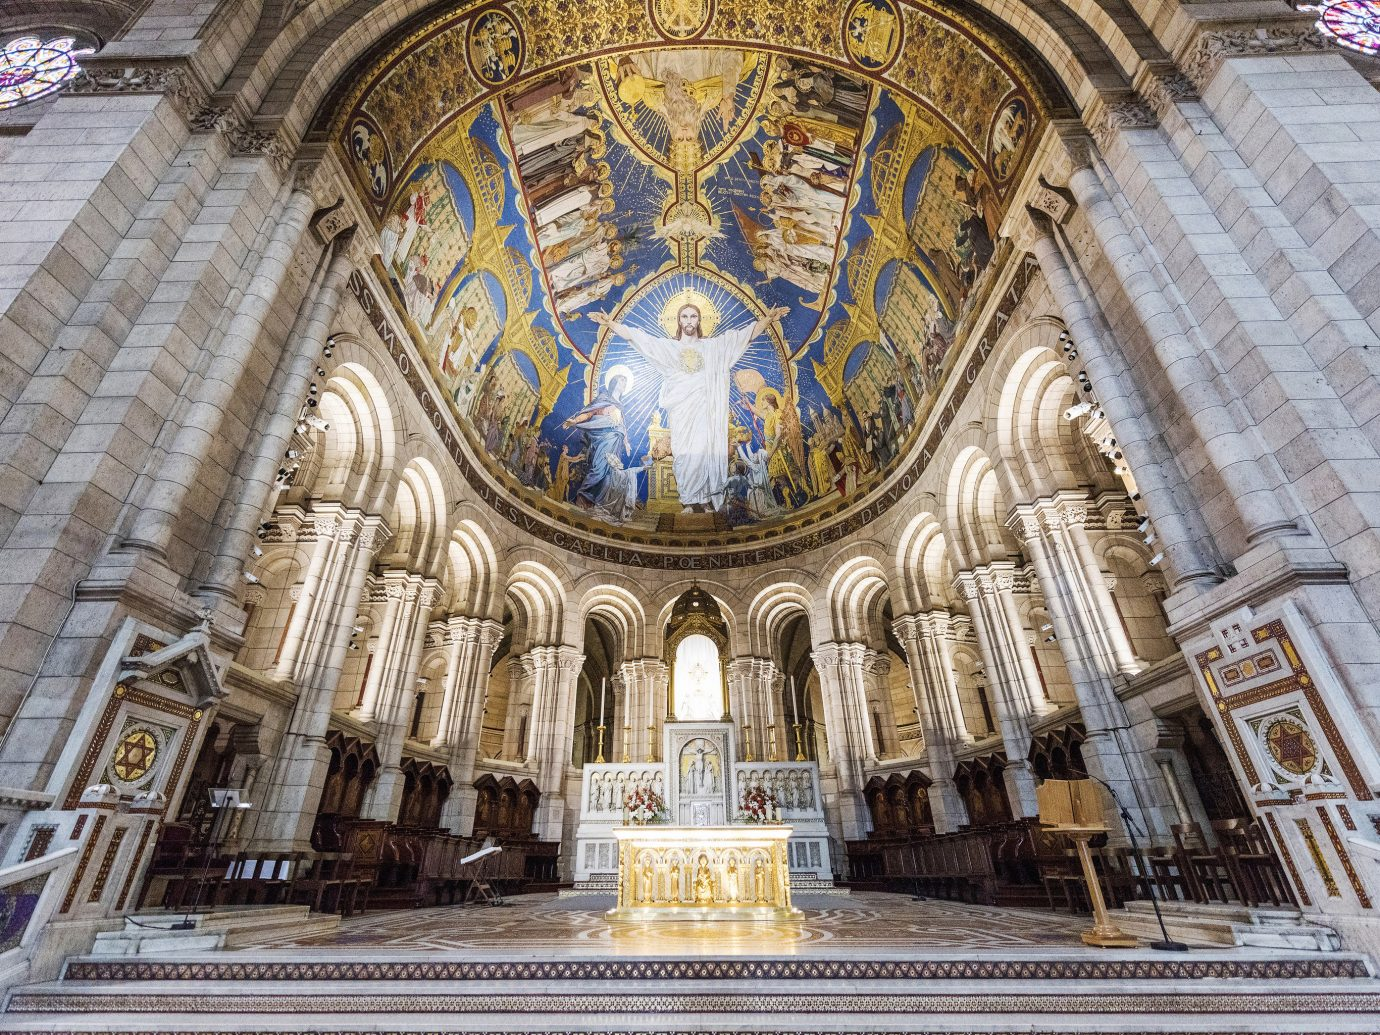 Trip Ideas building place of worship cathedral basilica Church byzantine architecture facade baptistery altar chapel ancient history synagogue close stone